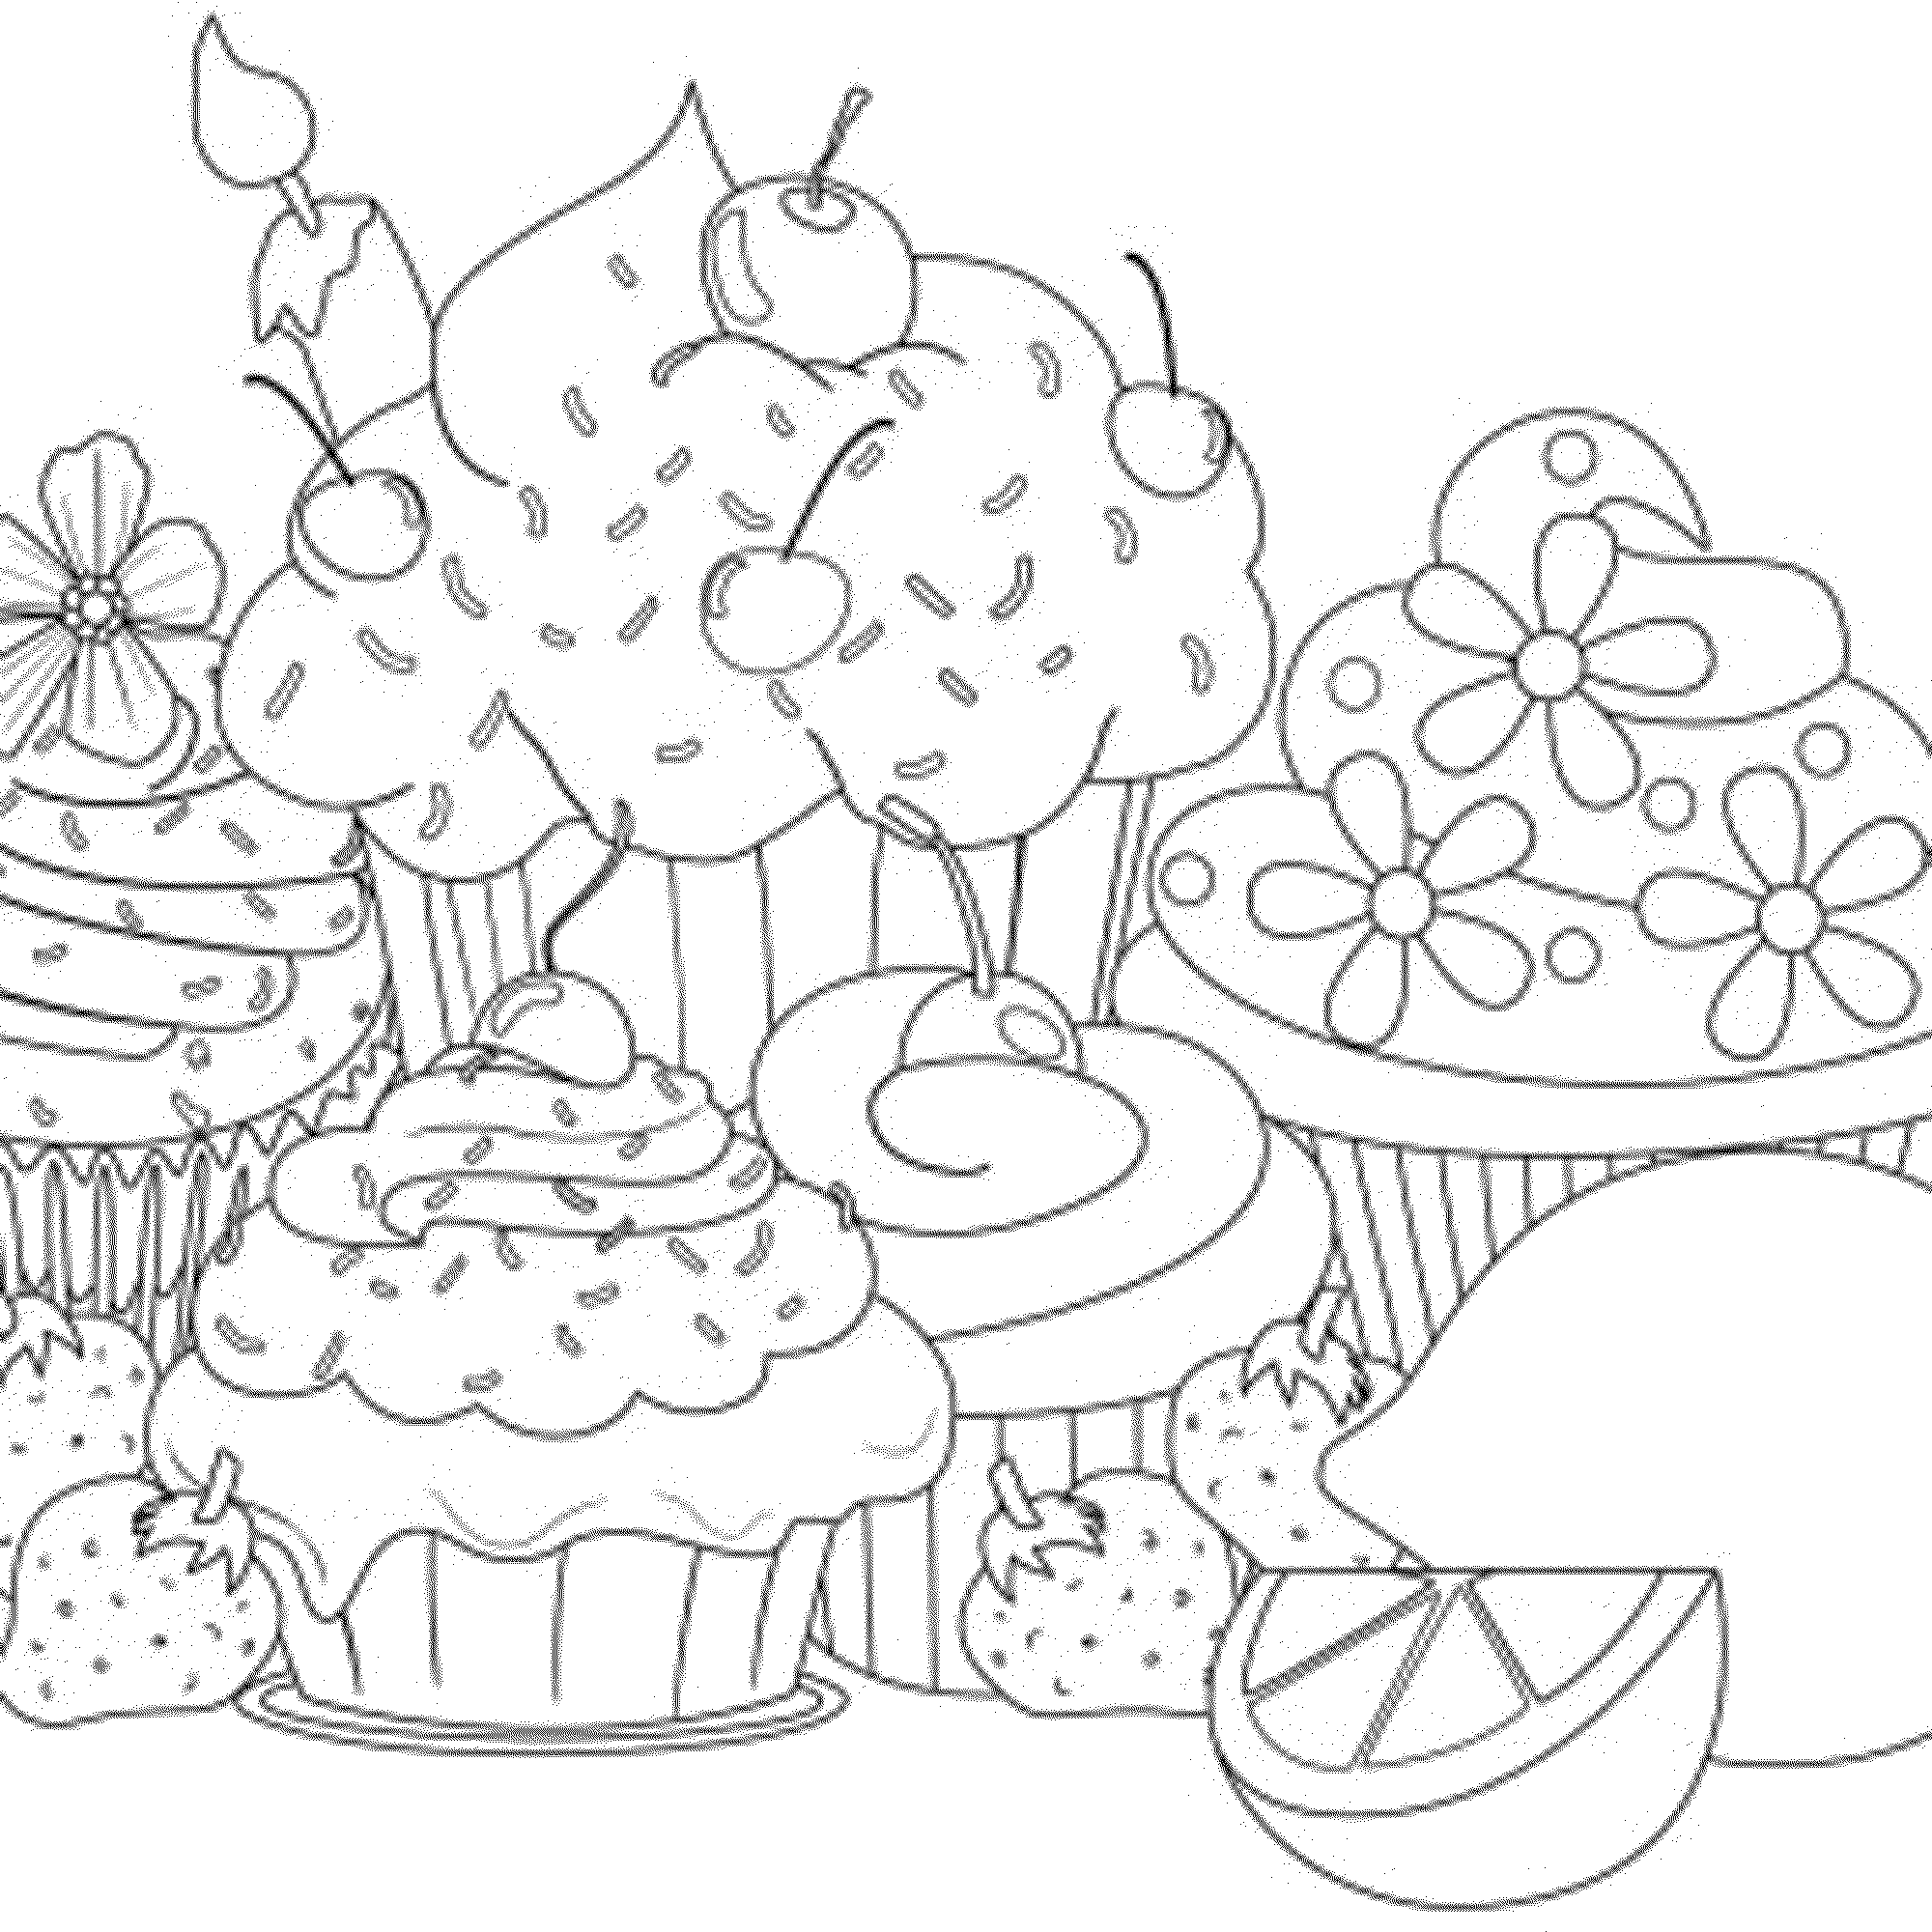 cupcake-coloring-page-0008-q1